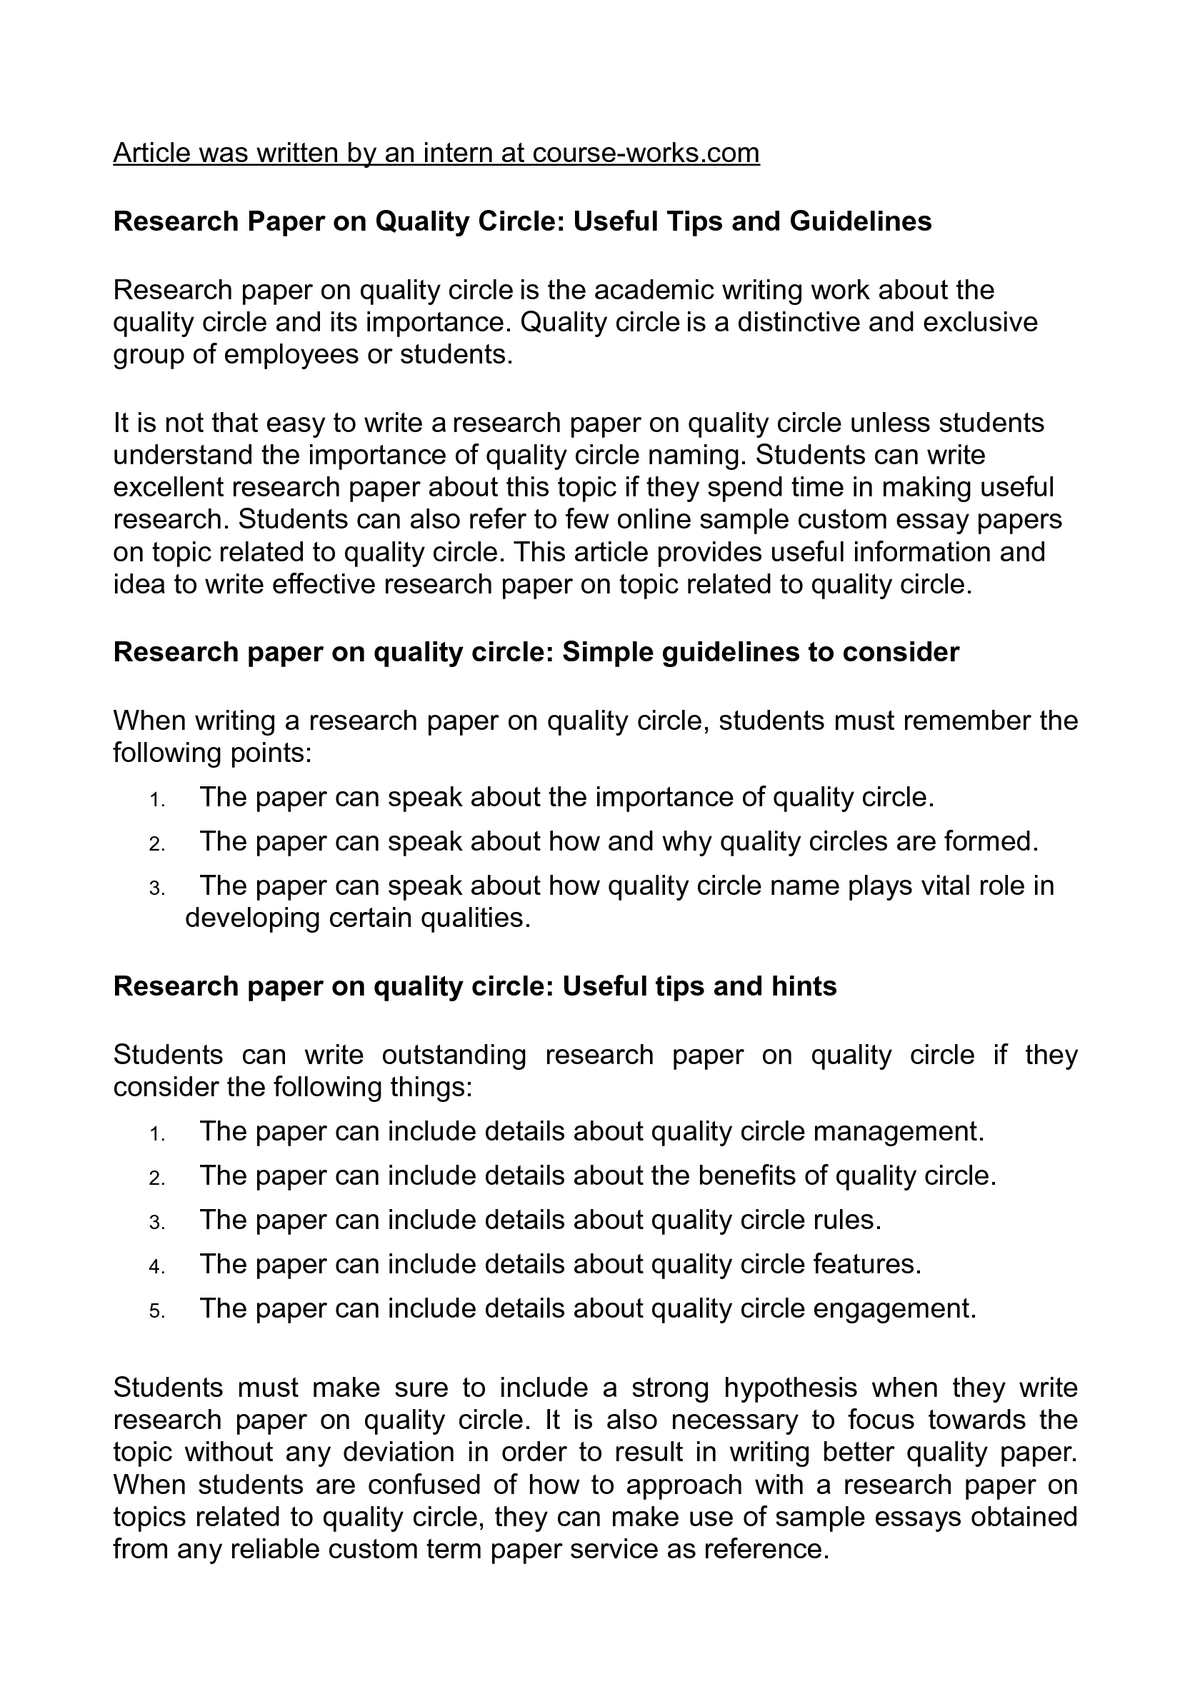 007 P1 Topics To Write Research Paper Beautiful On A Persuasive Computer Science Full